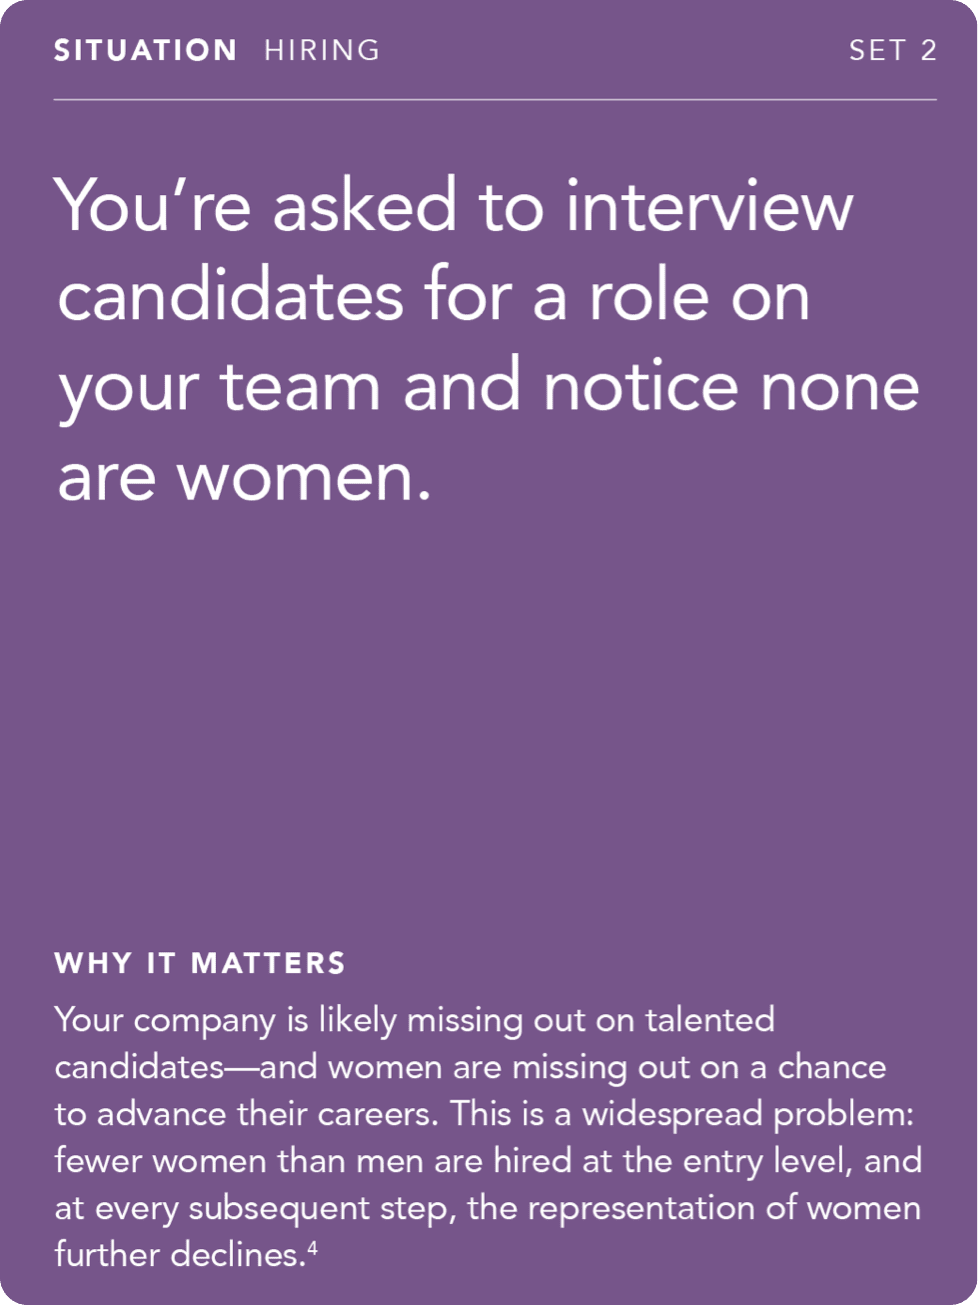 Front of card: Situation - you're asked to interview candidates for a role on your team and notice none are women.